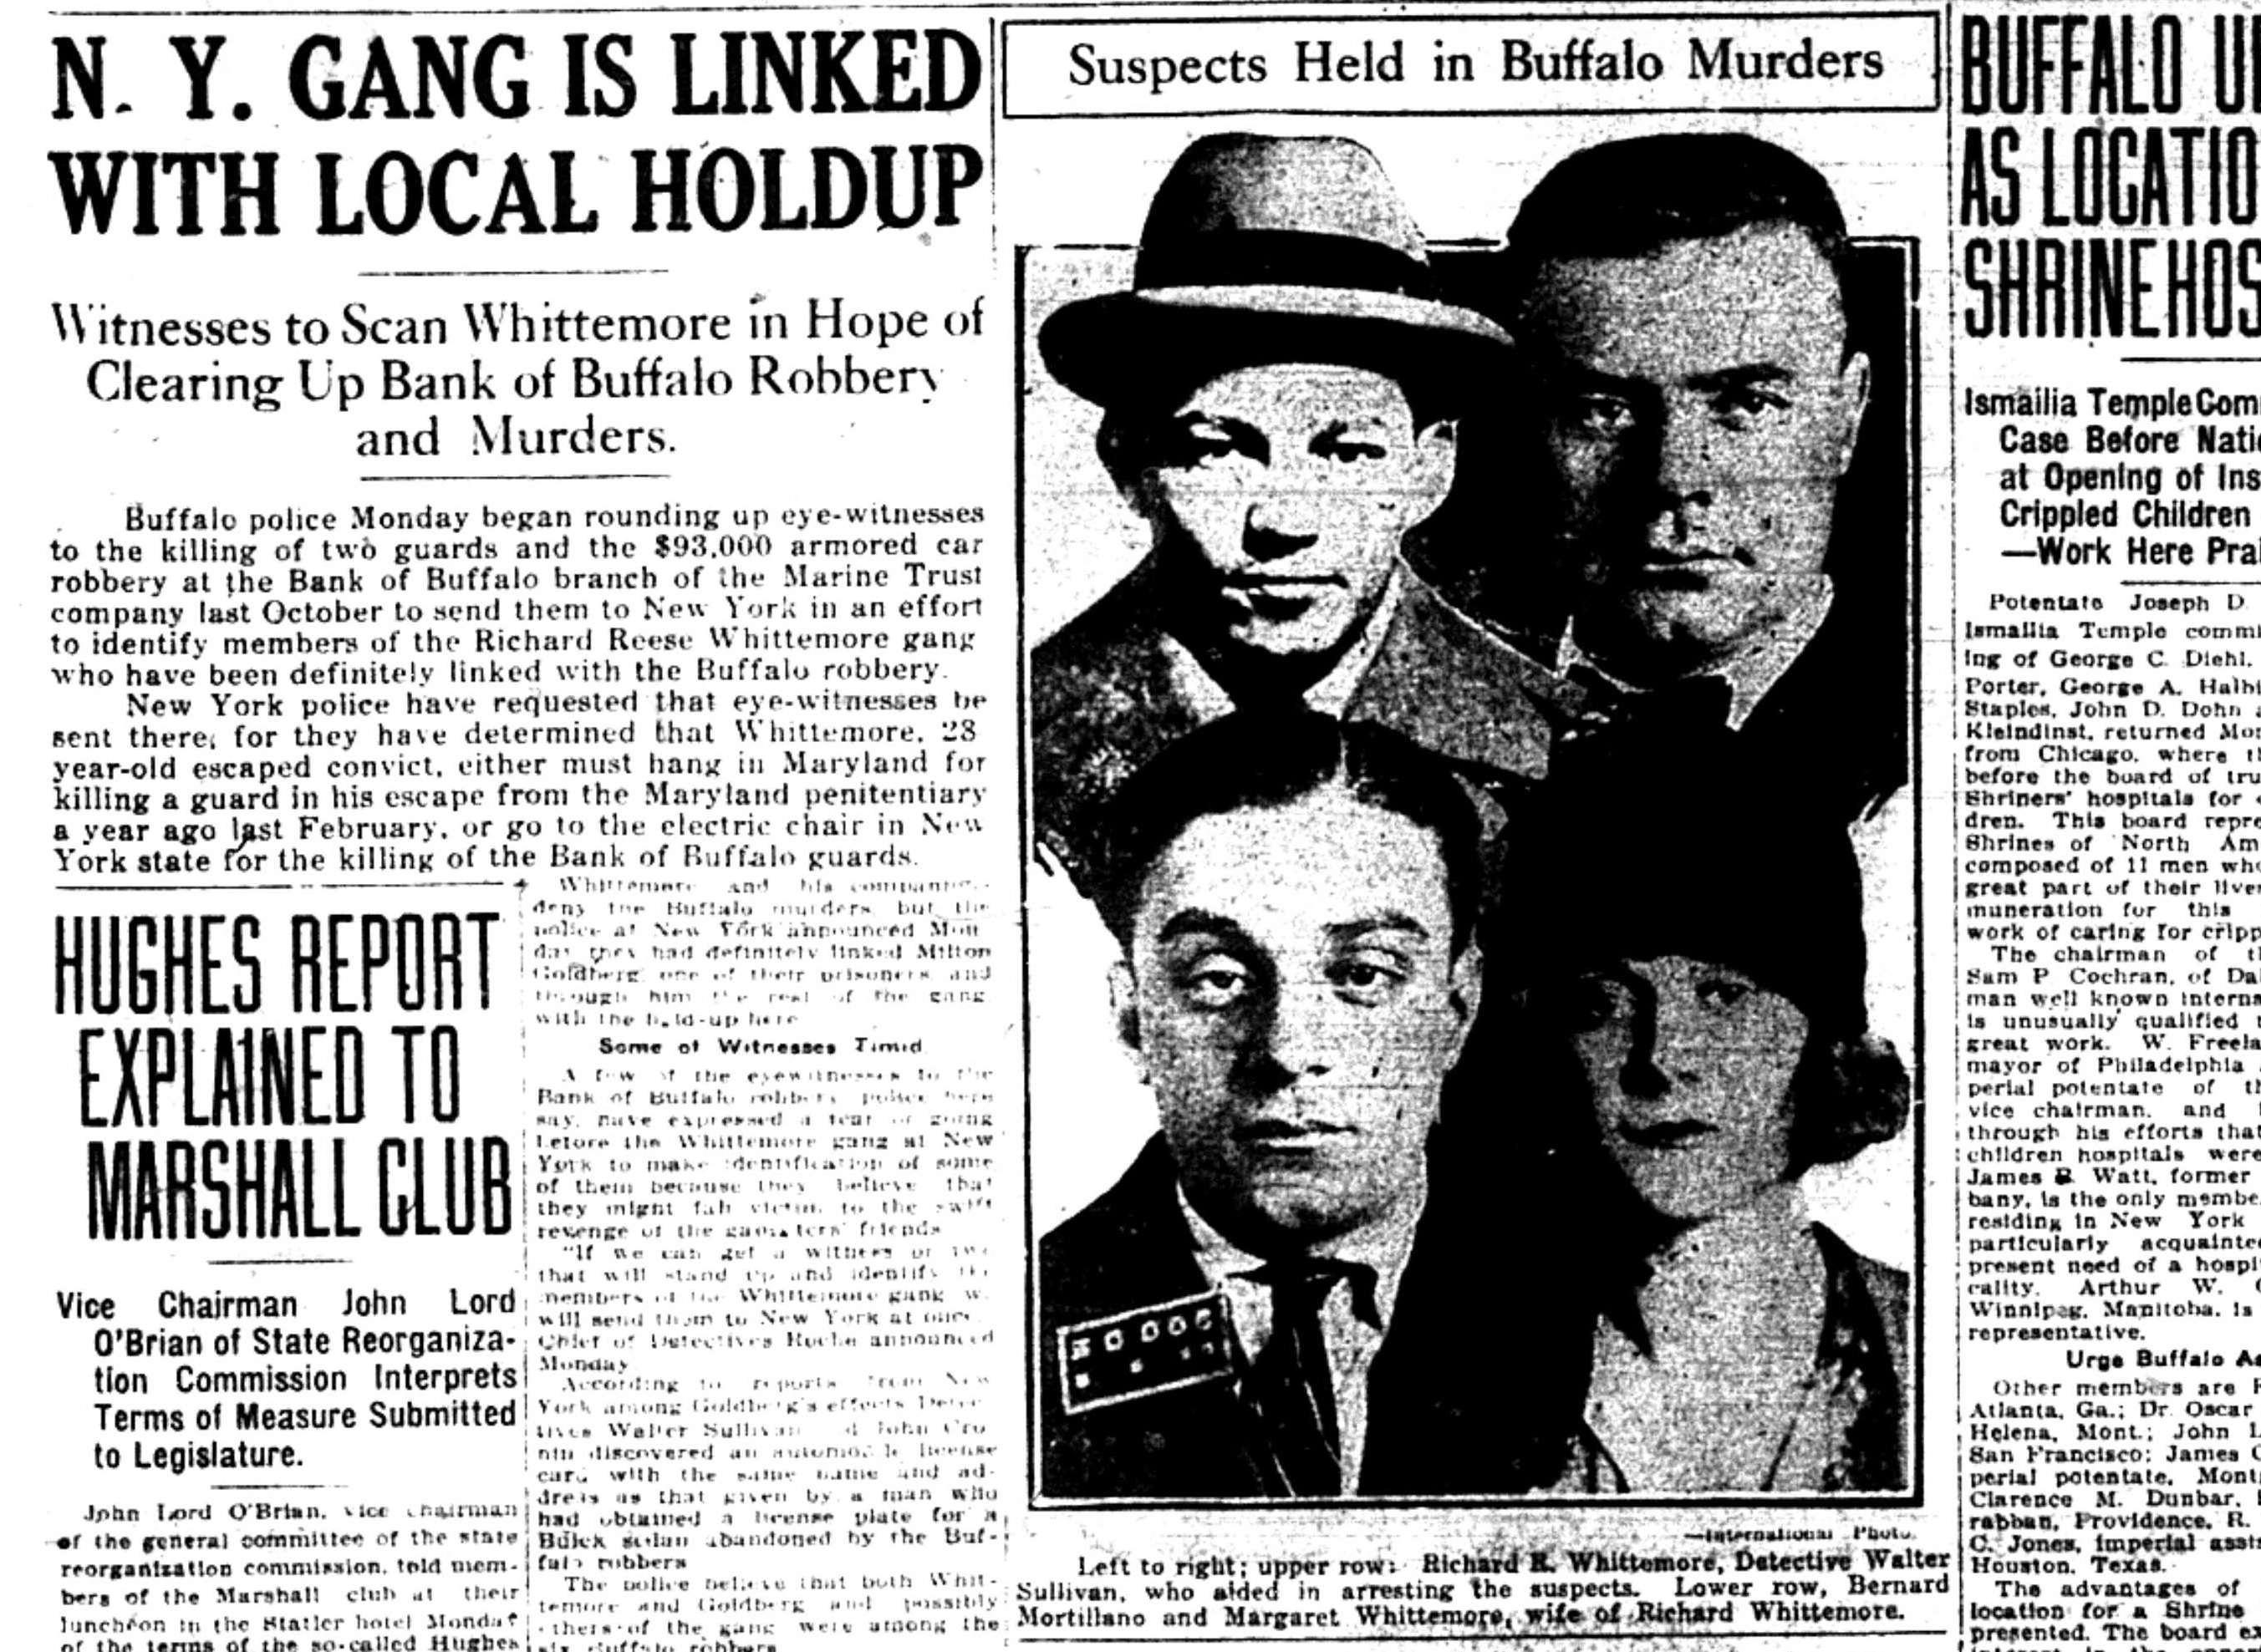 The arrest of Richard 'Candy Kid' Whittemore and his wife, Margaret 'Tiger Girl' Whittemore, made the front page of the March 22, 1926.